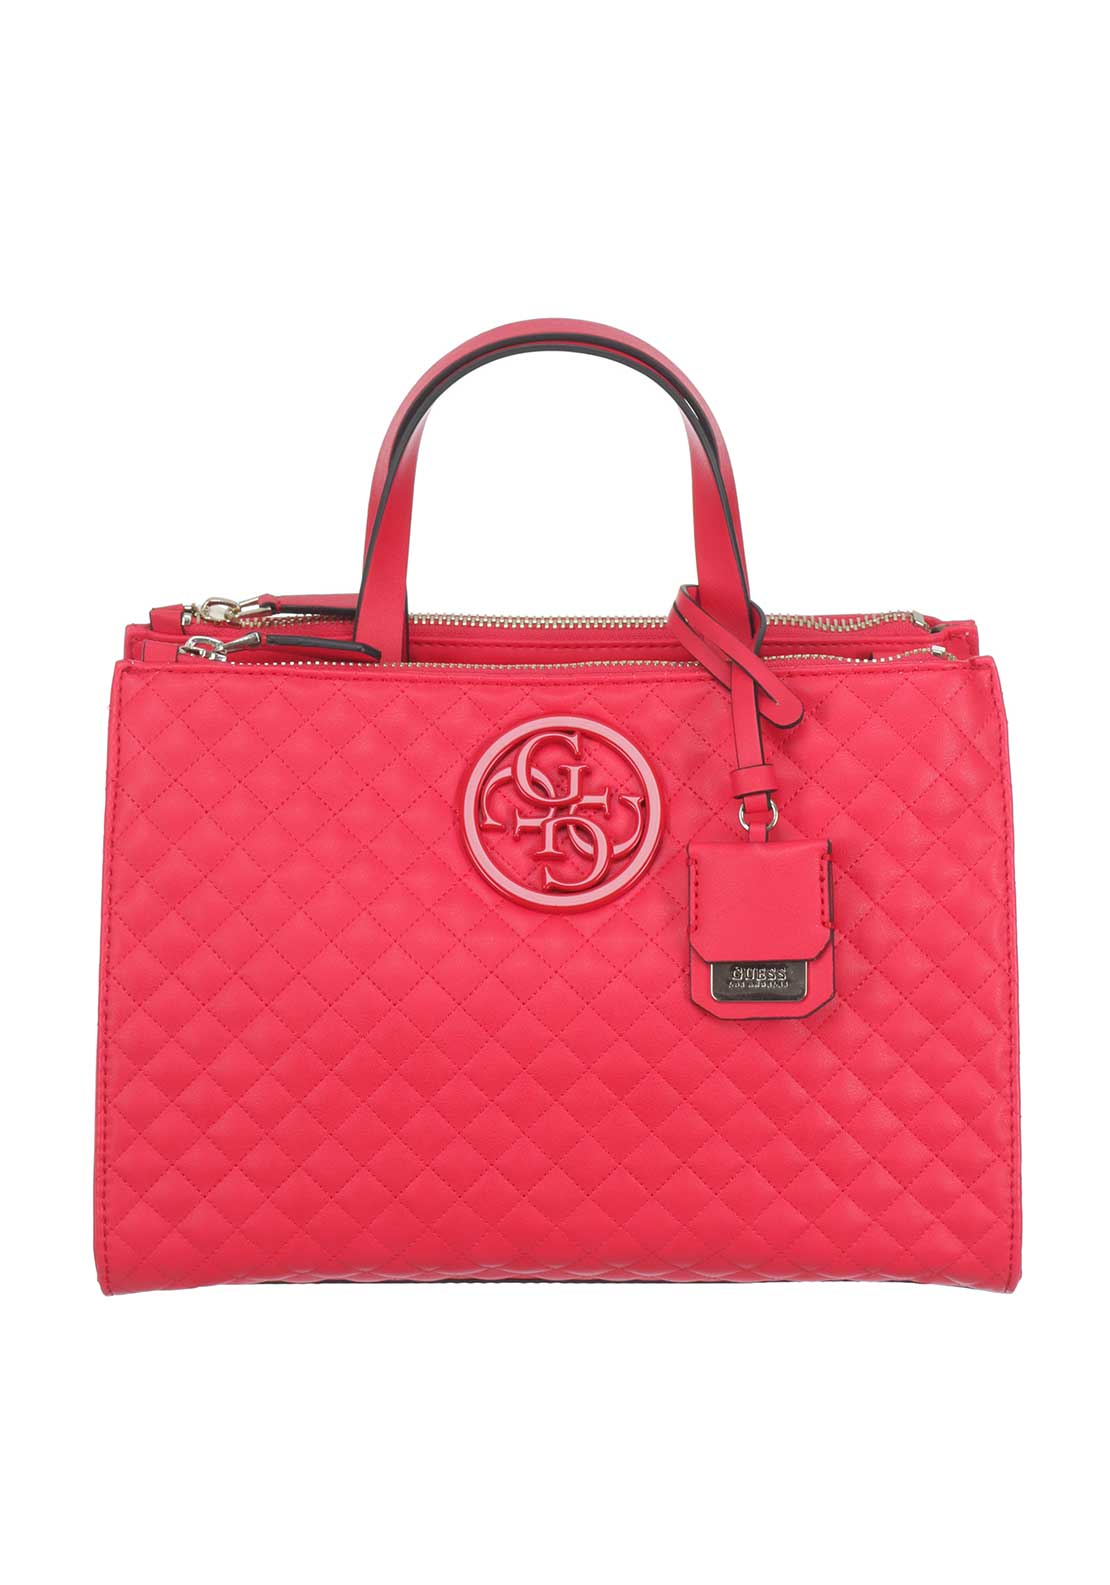 Guess G Lux Quilted Handbag, Red